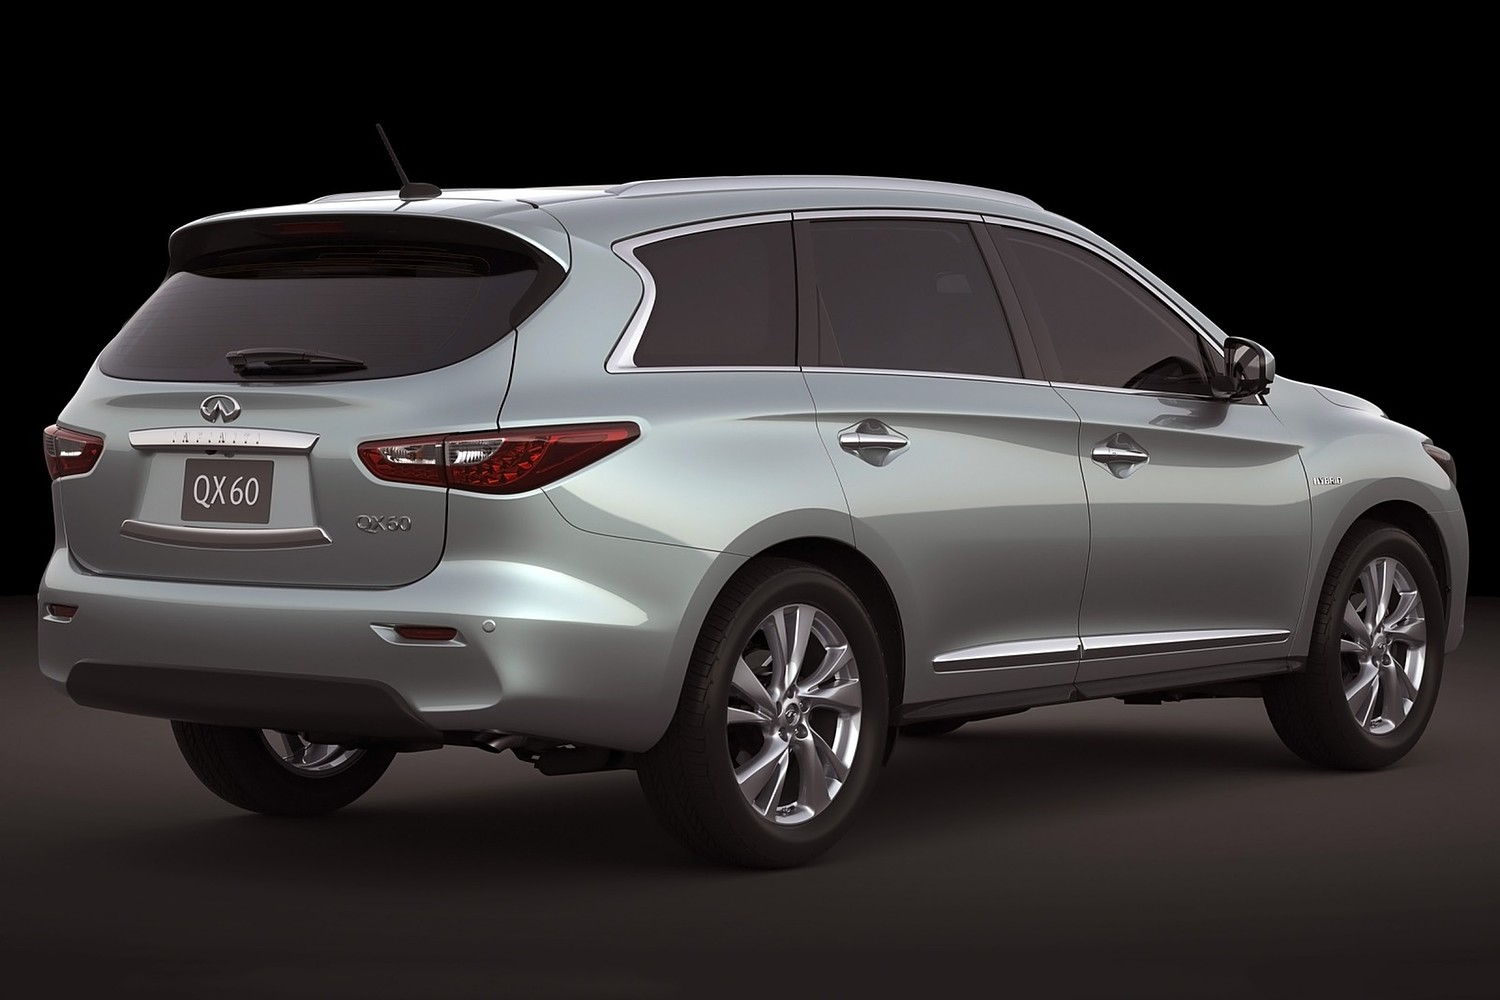 Infiniti Qx60 Hybrid 4dr Suv Exterior 2017 Model Year Shown